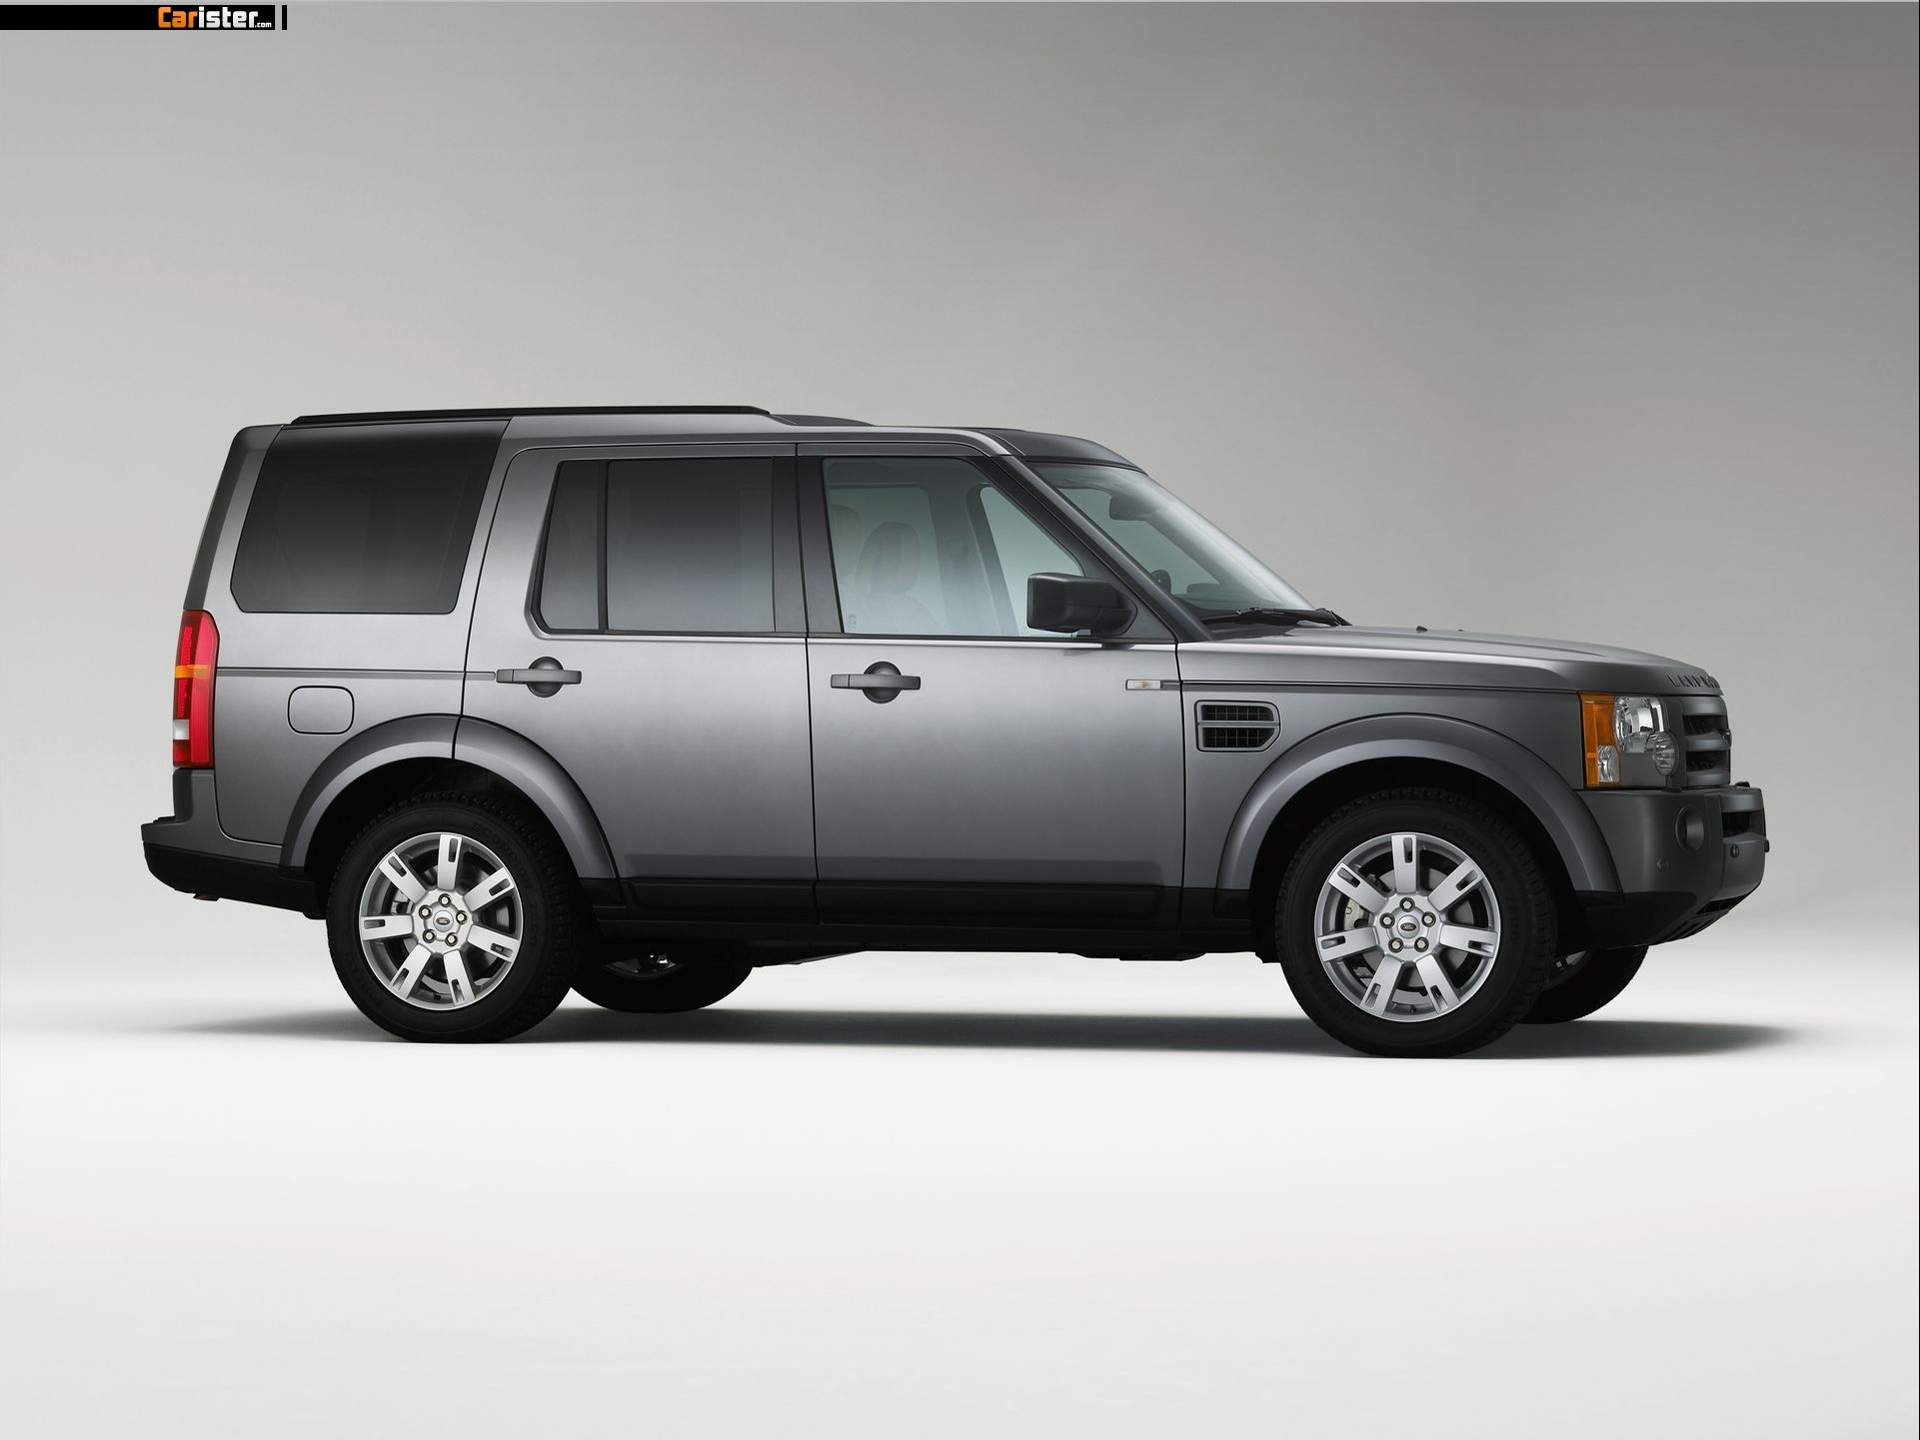 Land Rover Discovery 3 2009 - Photo 16 - Taille: 1920x1440